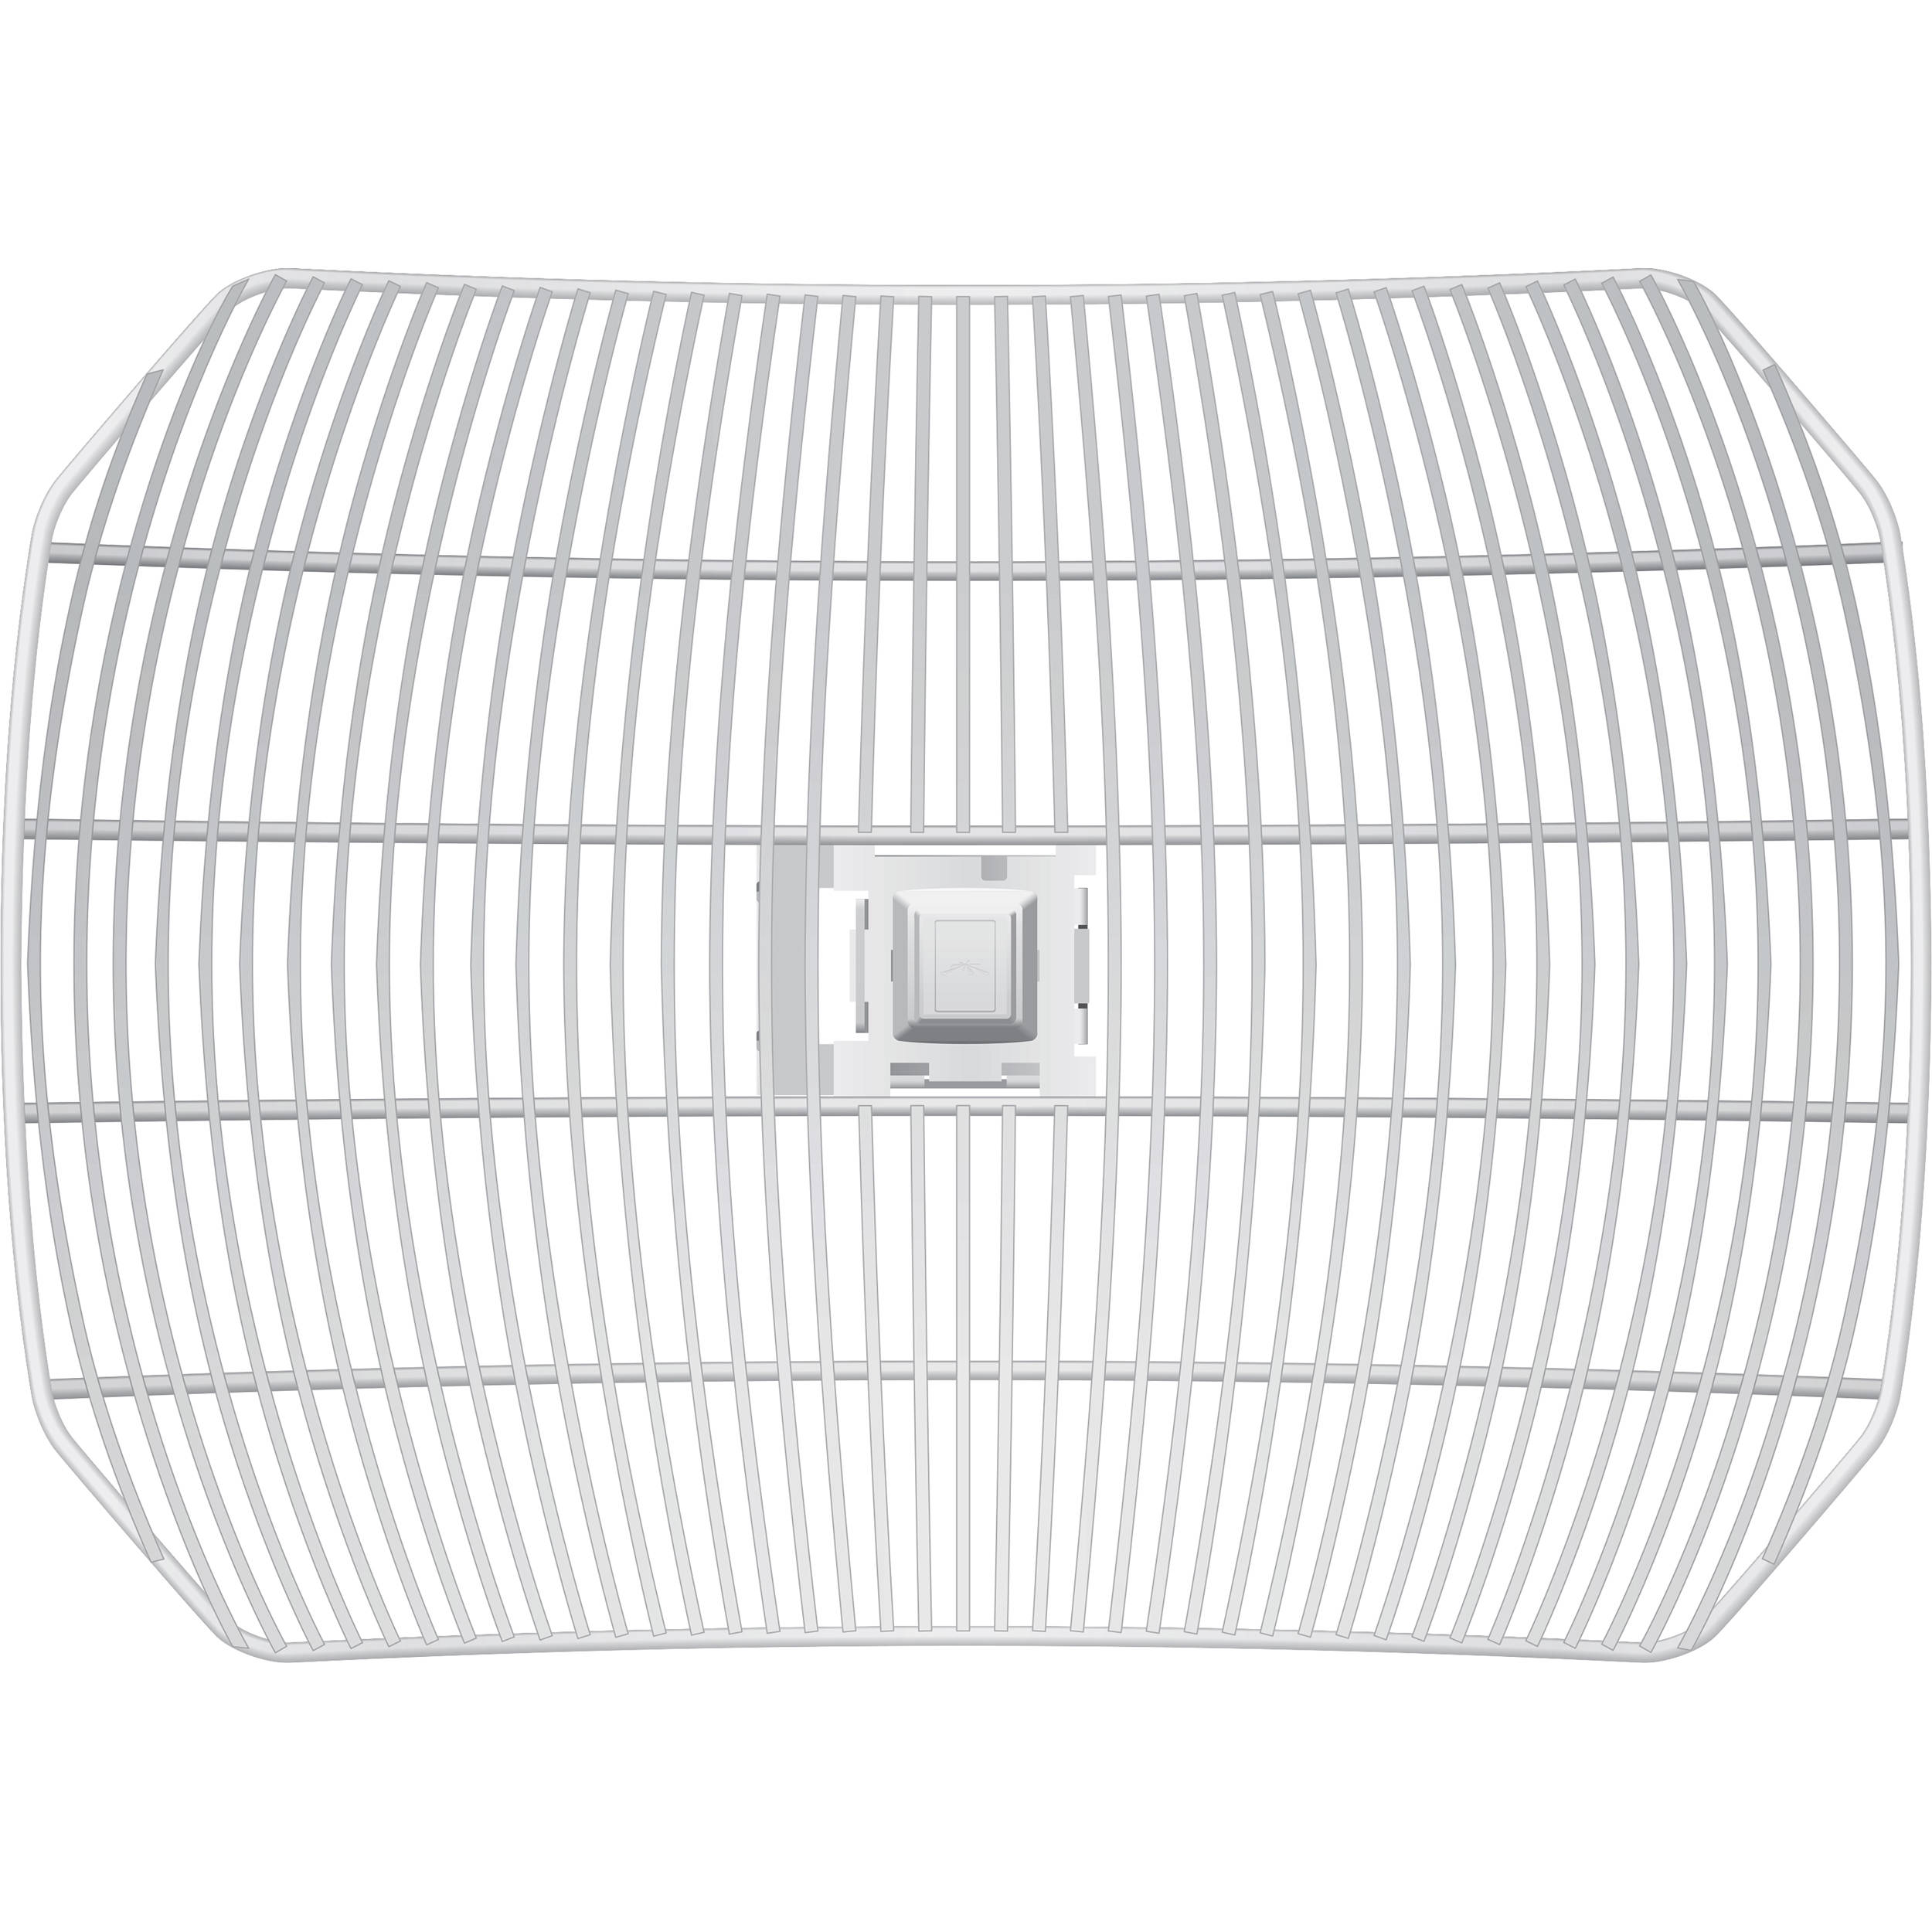 Ubiquiti Networks airGrid M5 HP 5 GHz High-Performance Integrated InnerFeed  Antenna (27 dBi, 5-Pack)